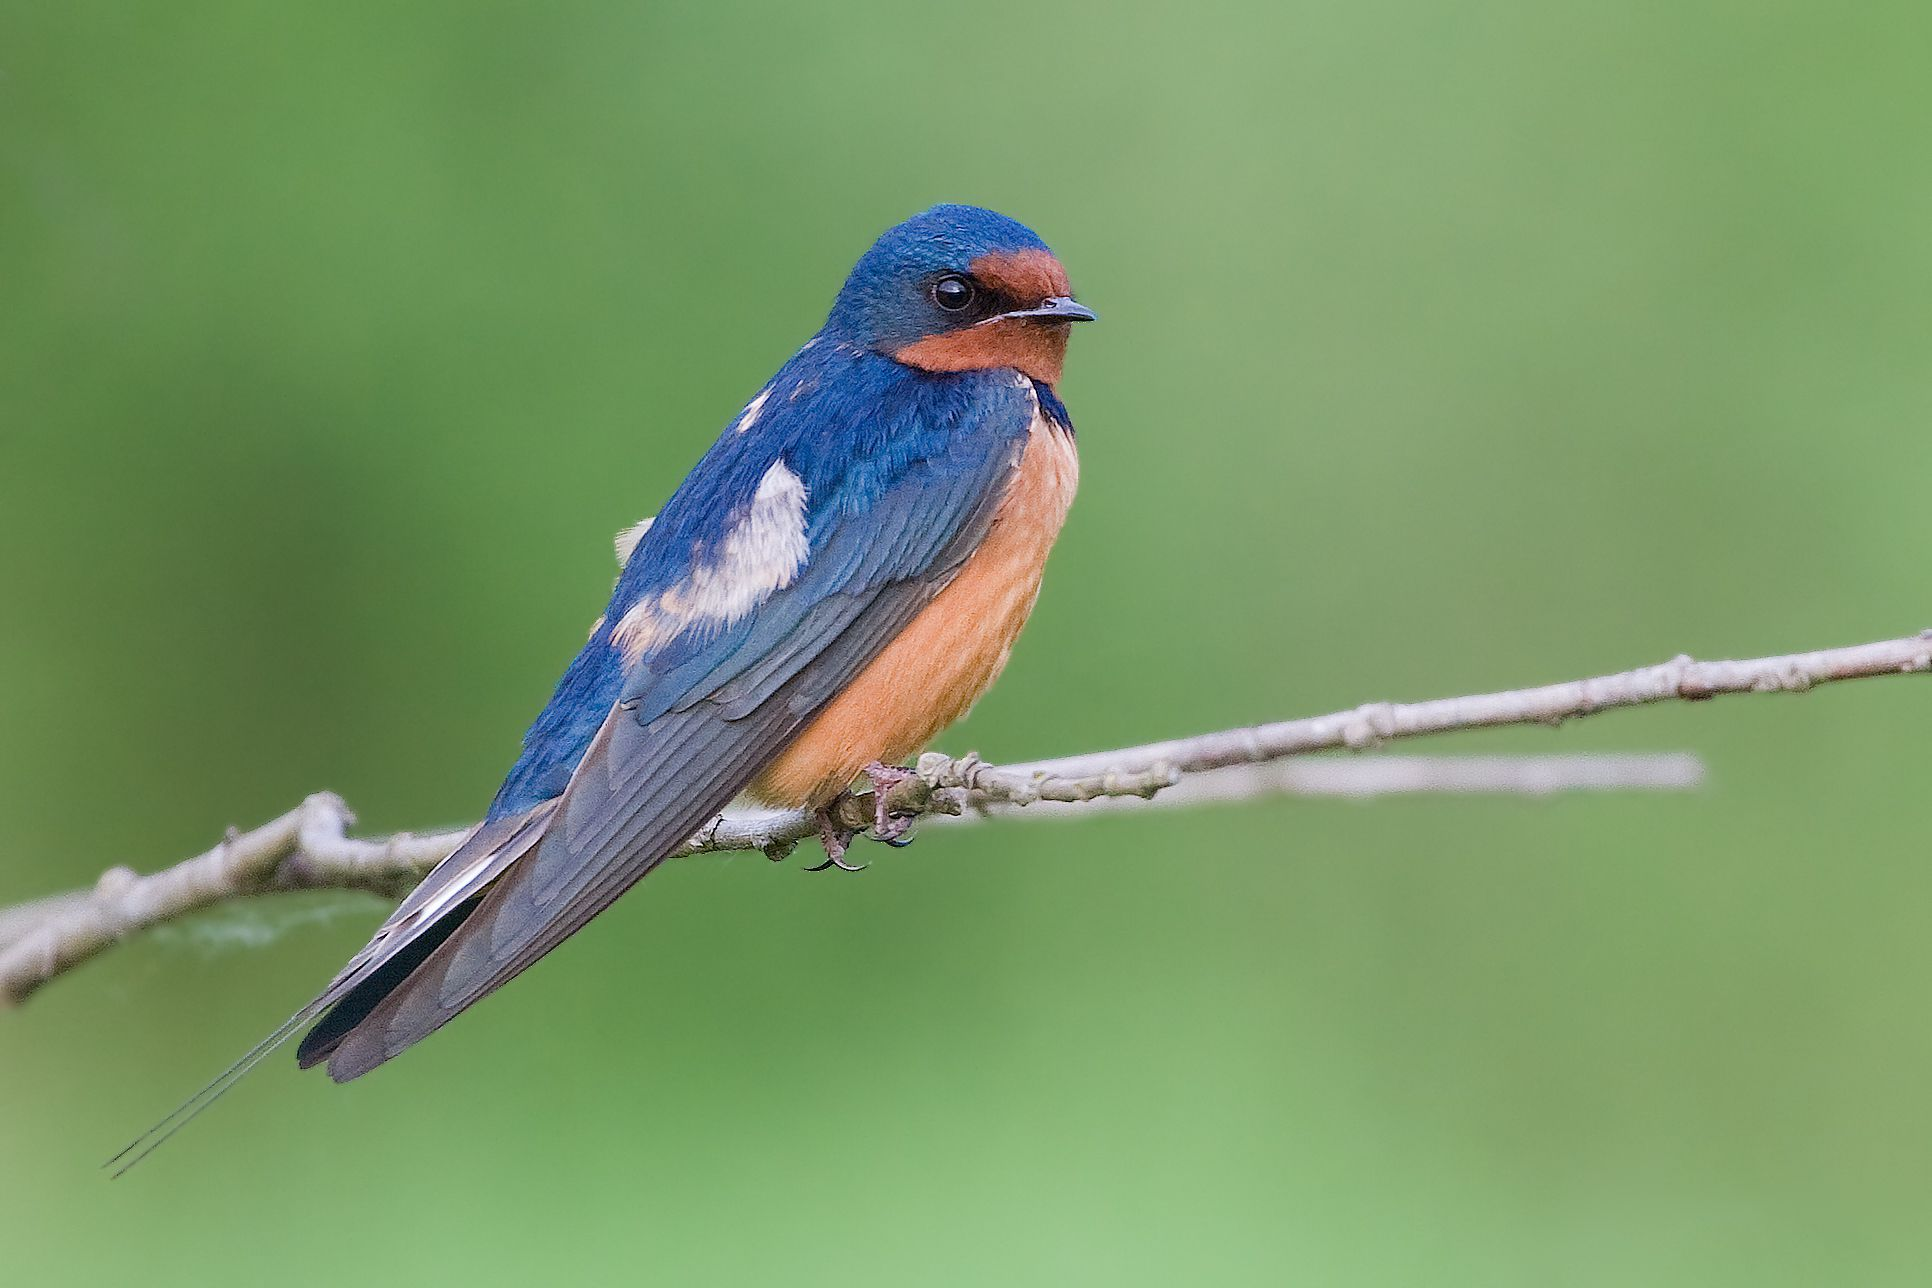 معلومات عن طائر خطاف المخازن Barn-swallow-migrates-to-the-south-during-the-winter-to-avoid-low-temperatures-and-lack-of-food.